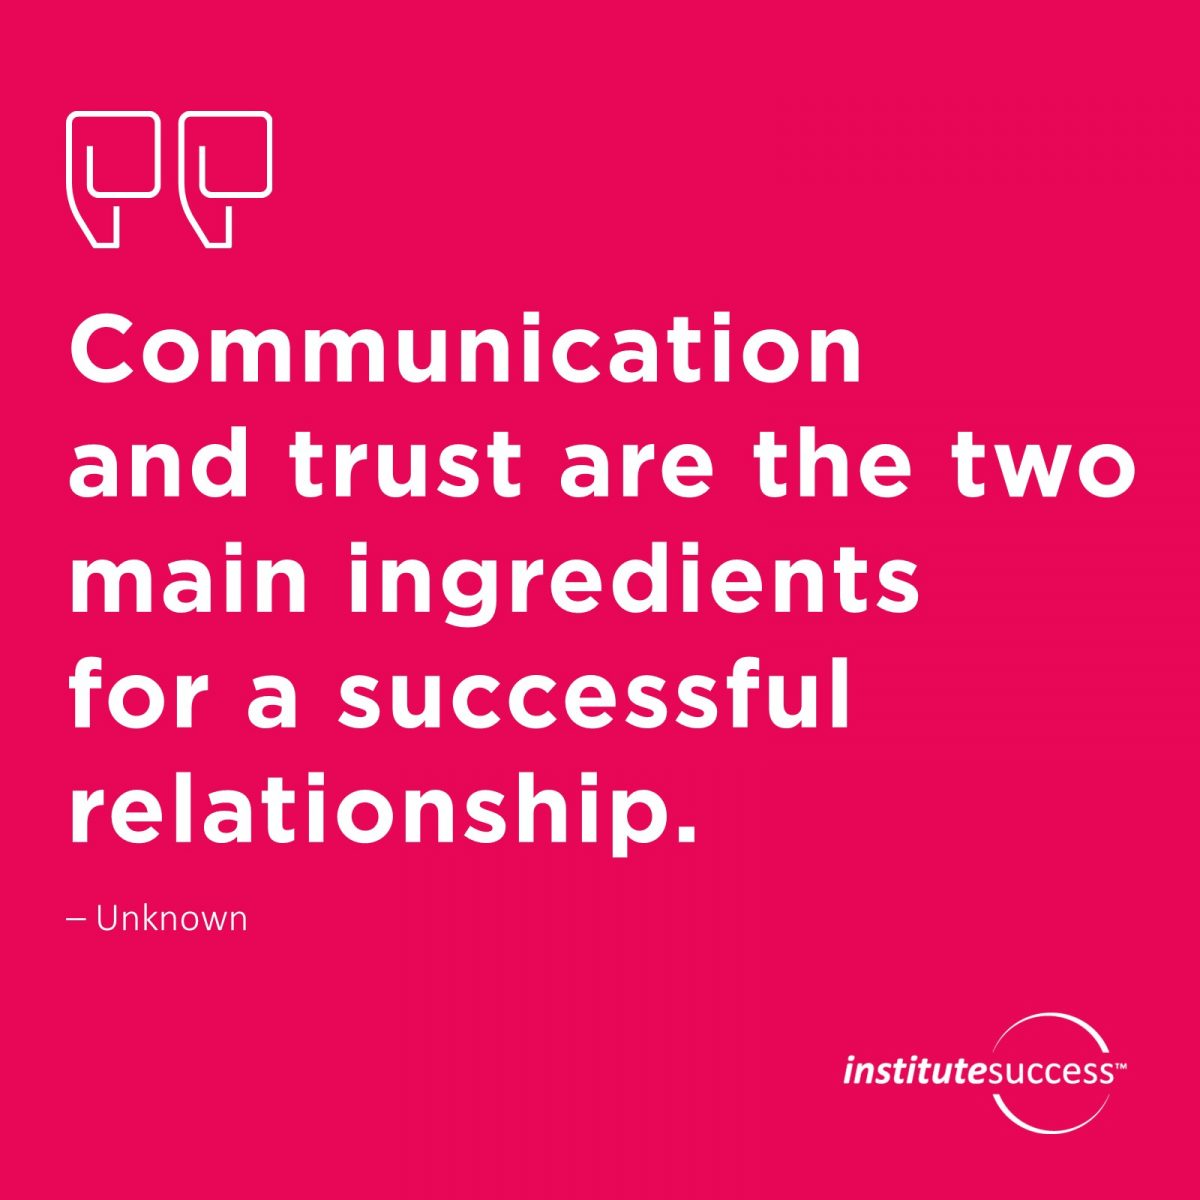 Communication and trust are the two main ingredients for a successful relationship. – Unknown